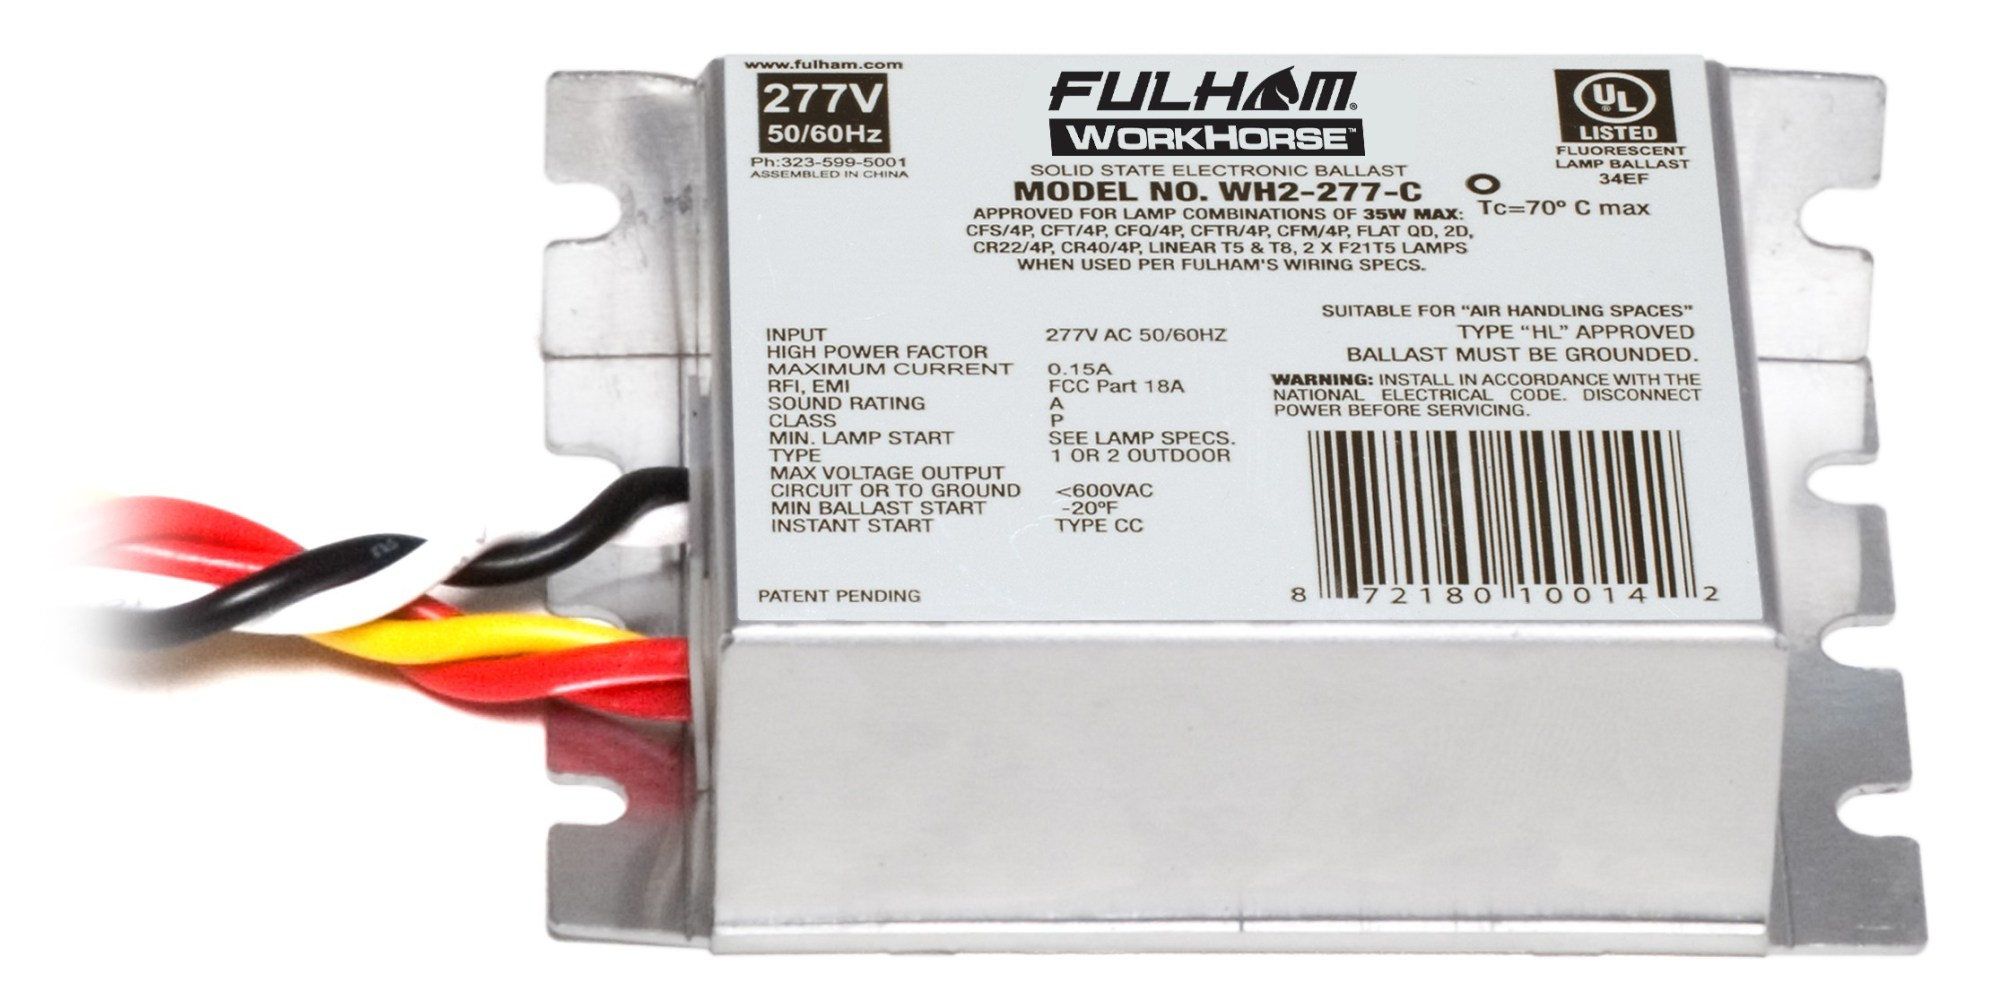 hight resolution of fulham wh2 277 c workhorse 2 ballast 35w max lamps fluorescent ballast wiring diagram ballast diagram wiring workhorse wh2 277c